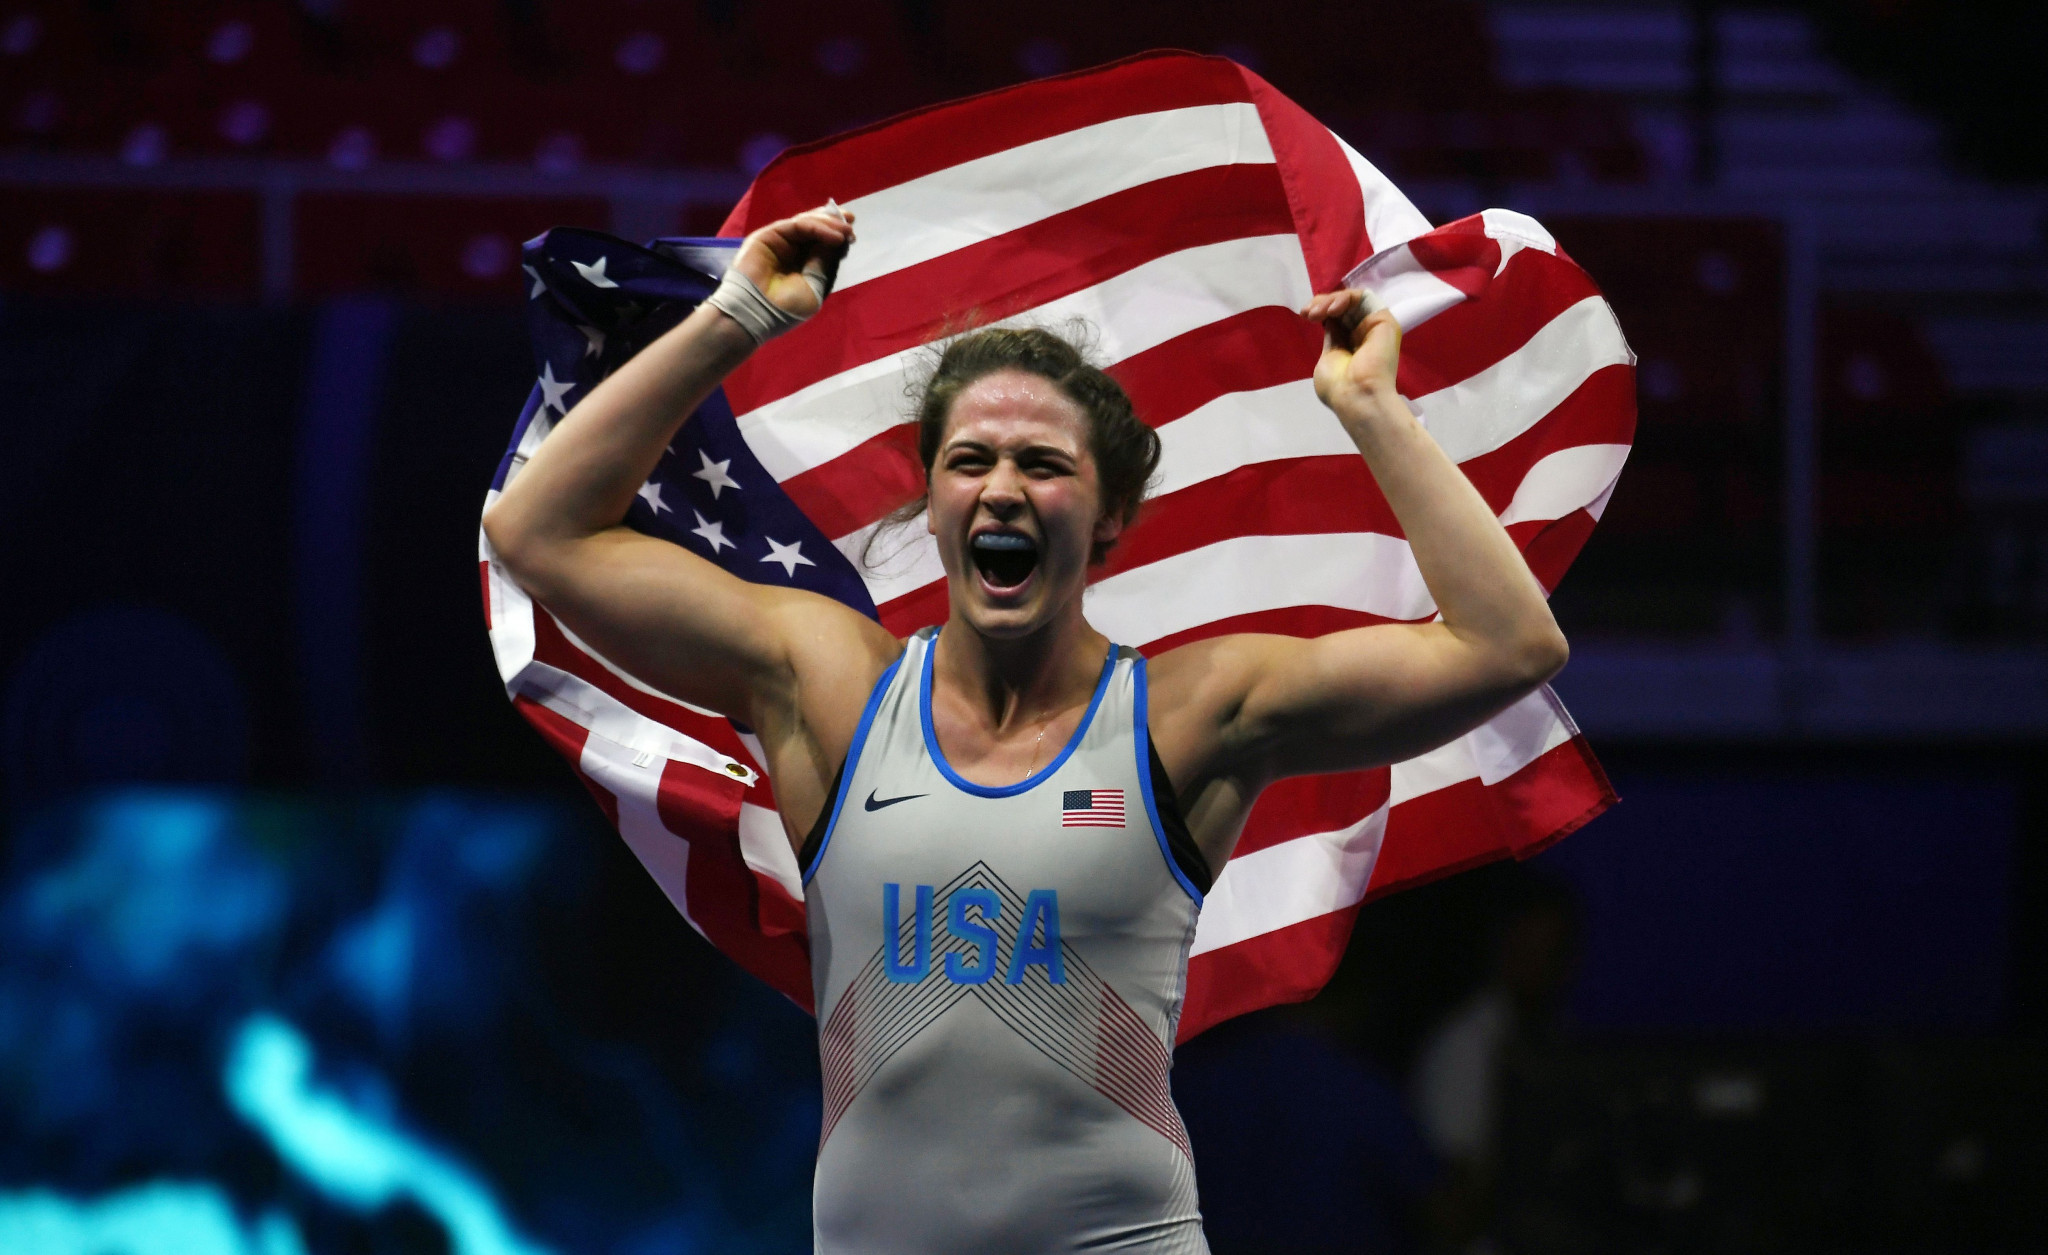 Gray edges Minagawa to earn fifth women's title at World Wrestling Championships